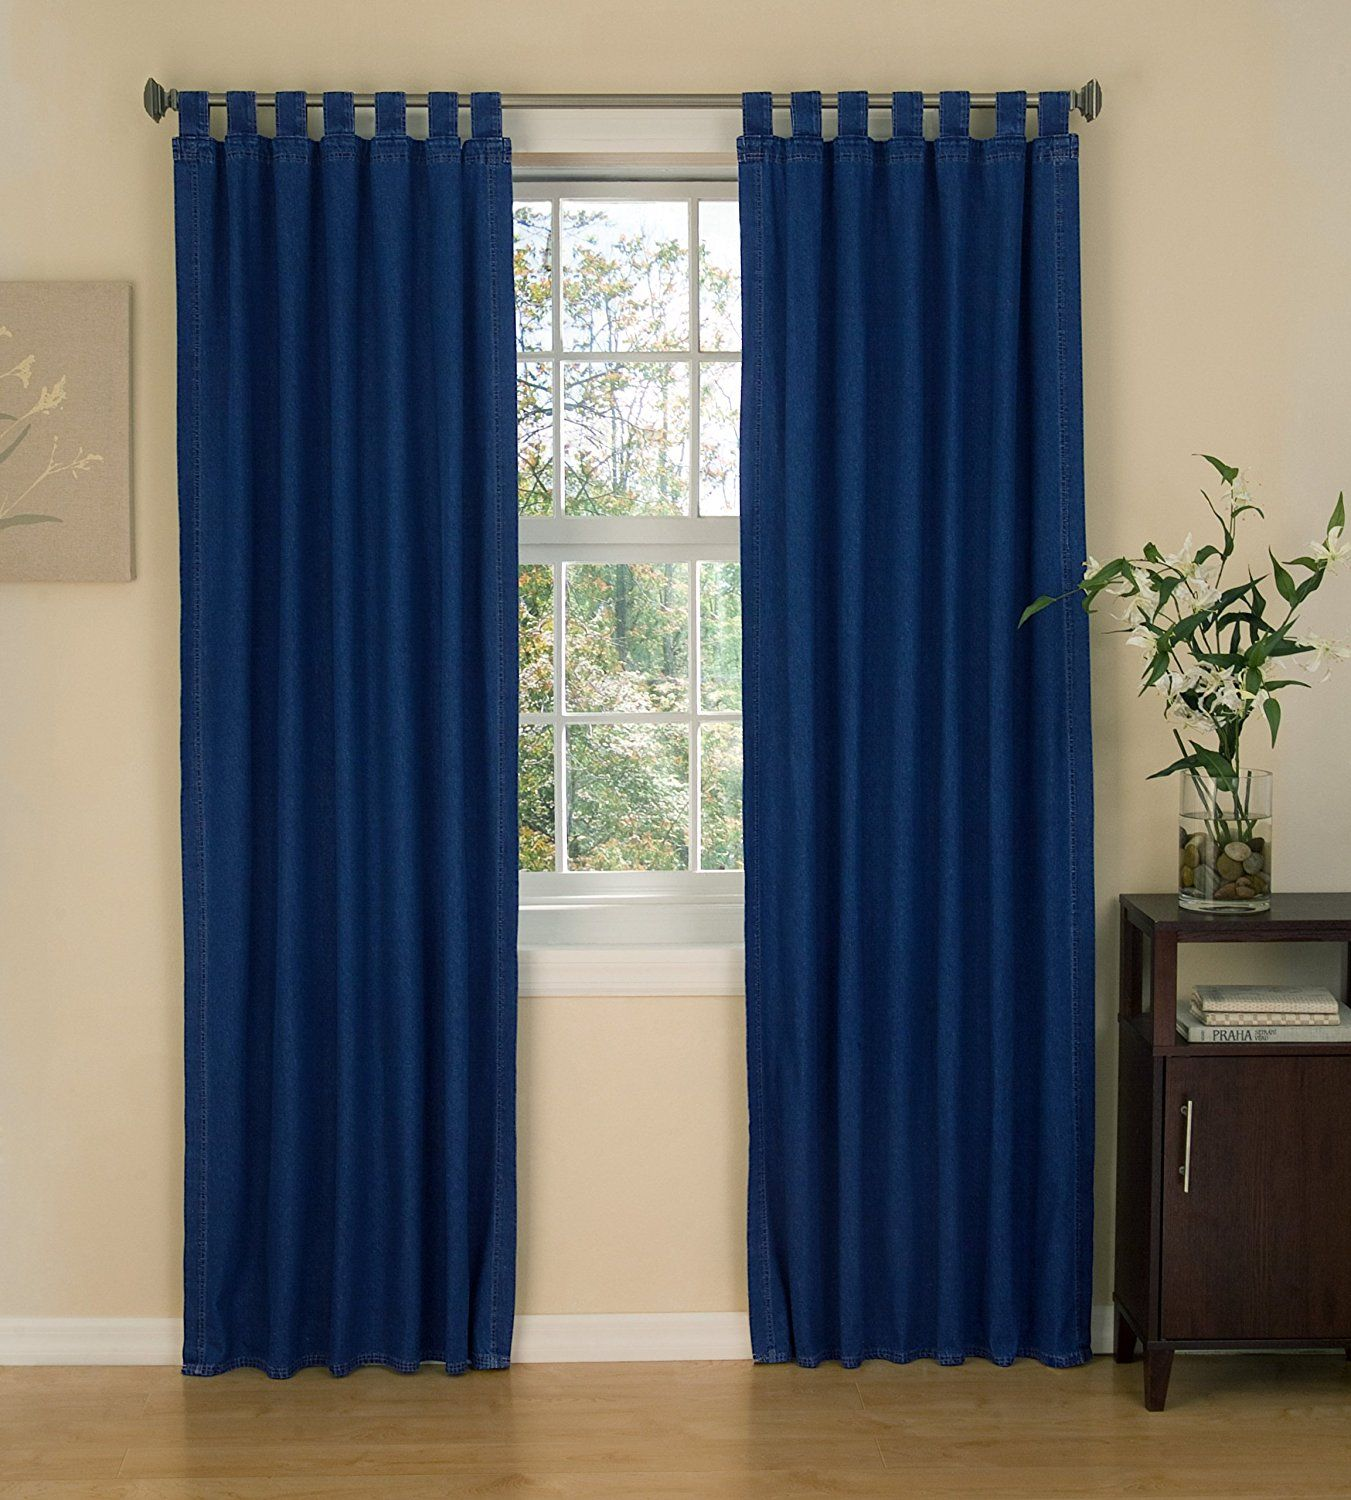 Tab Top Curtains Amazon American Denim 80 Unbelievable Item Right Here This Is An